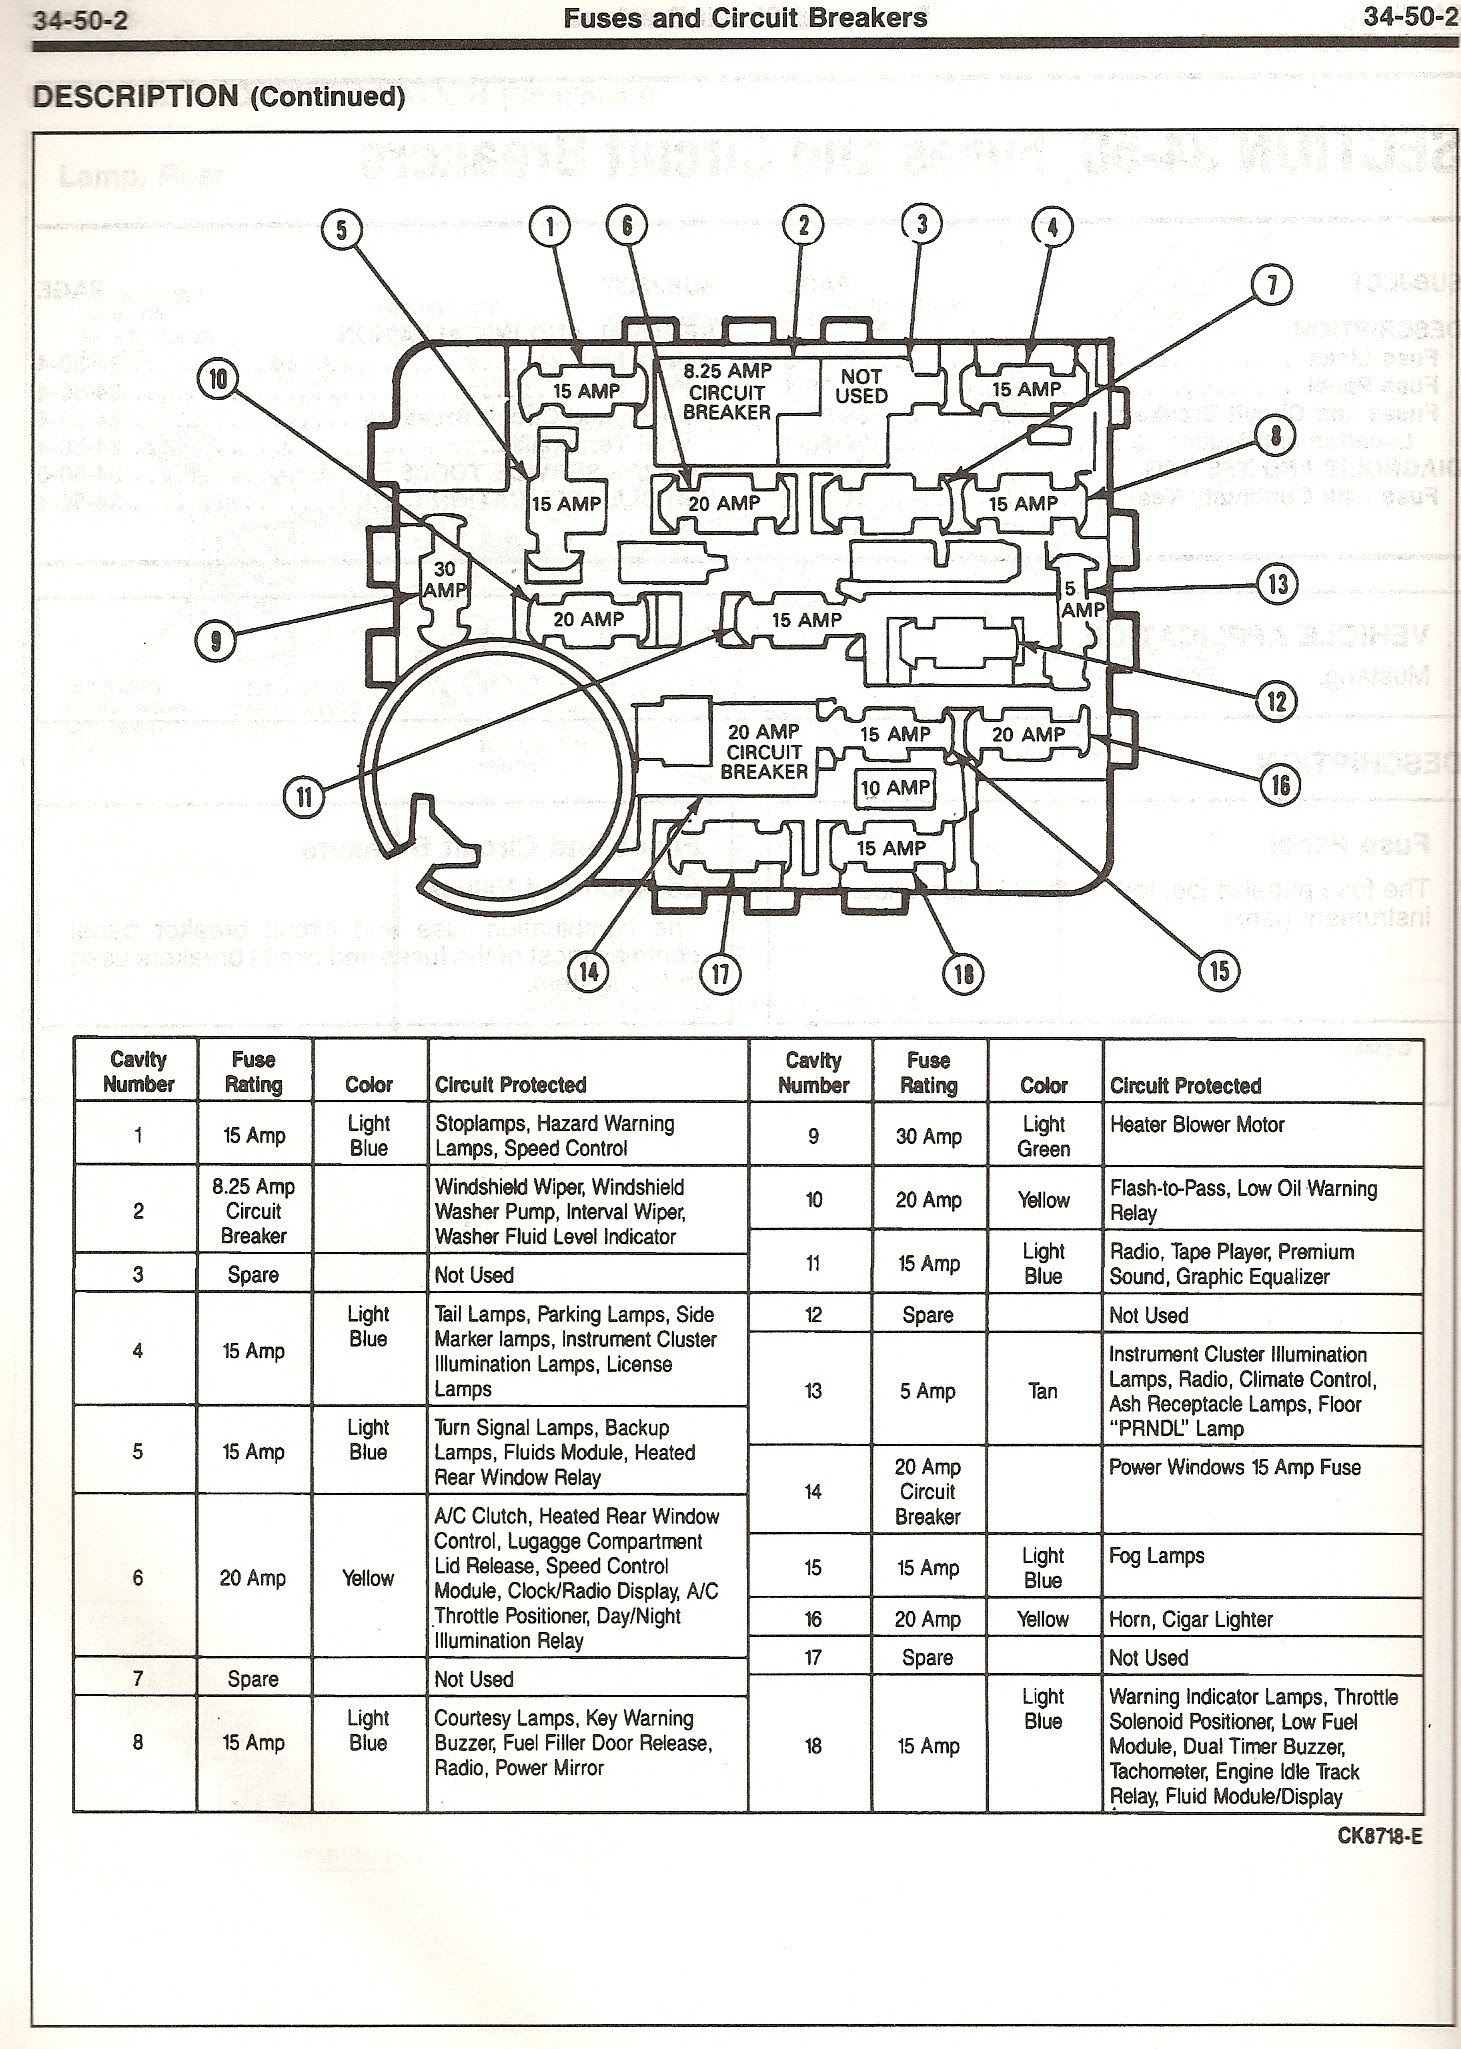 2002 Mustang Fuse Box Diagram Gota Wiring Diagram